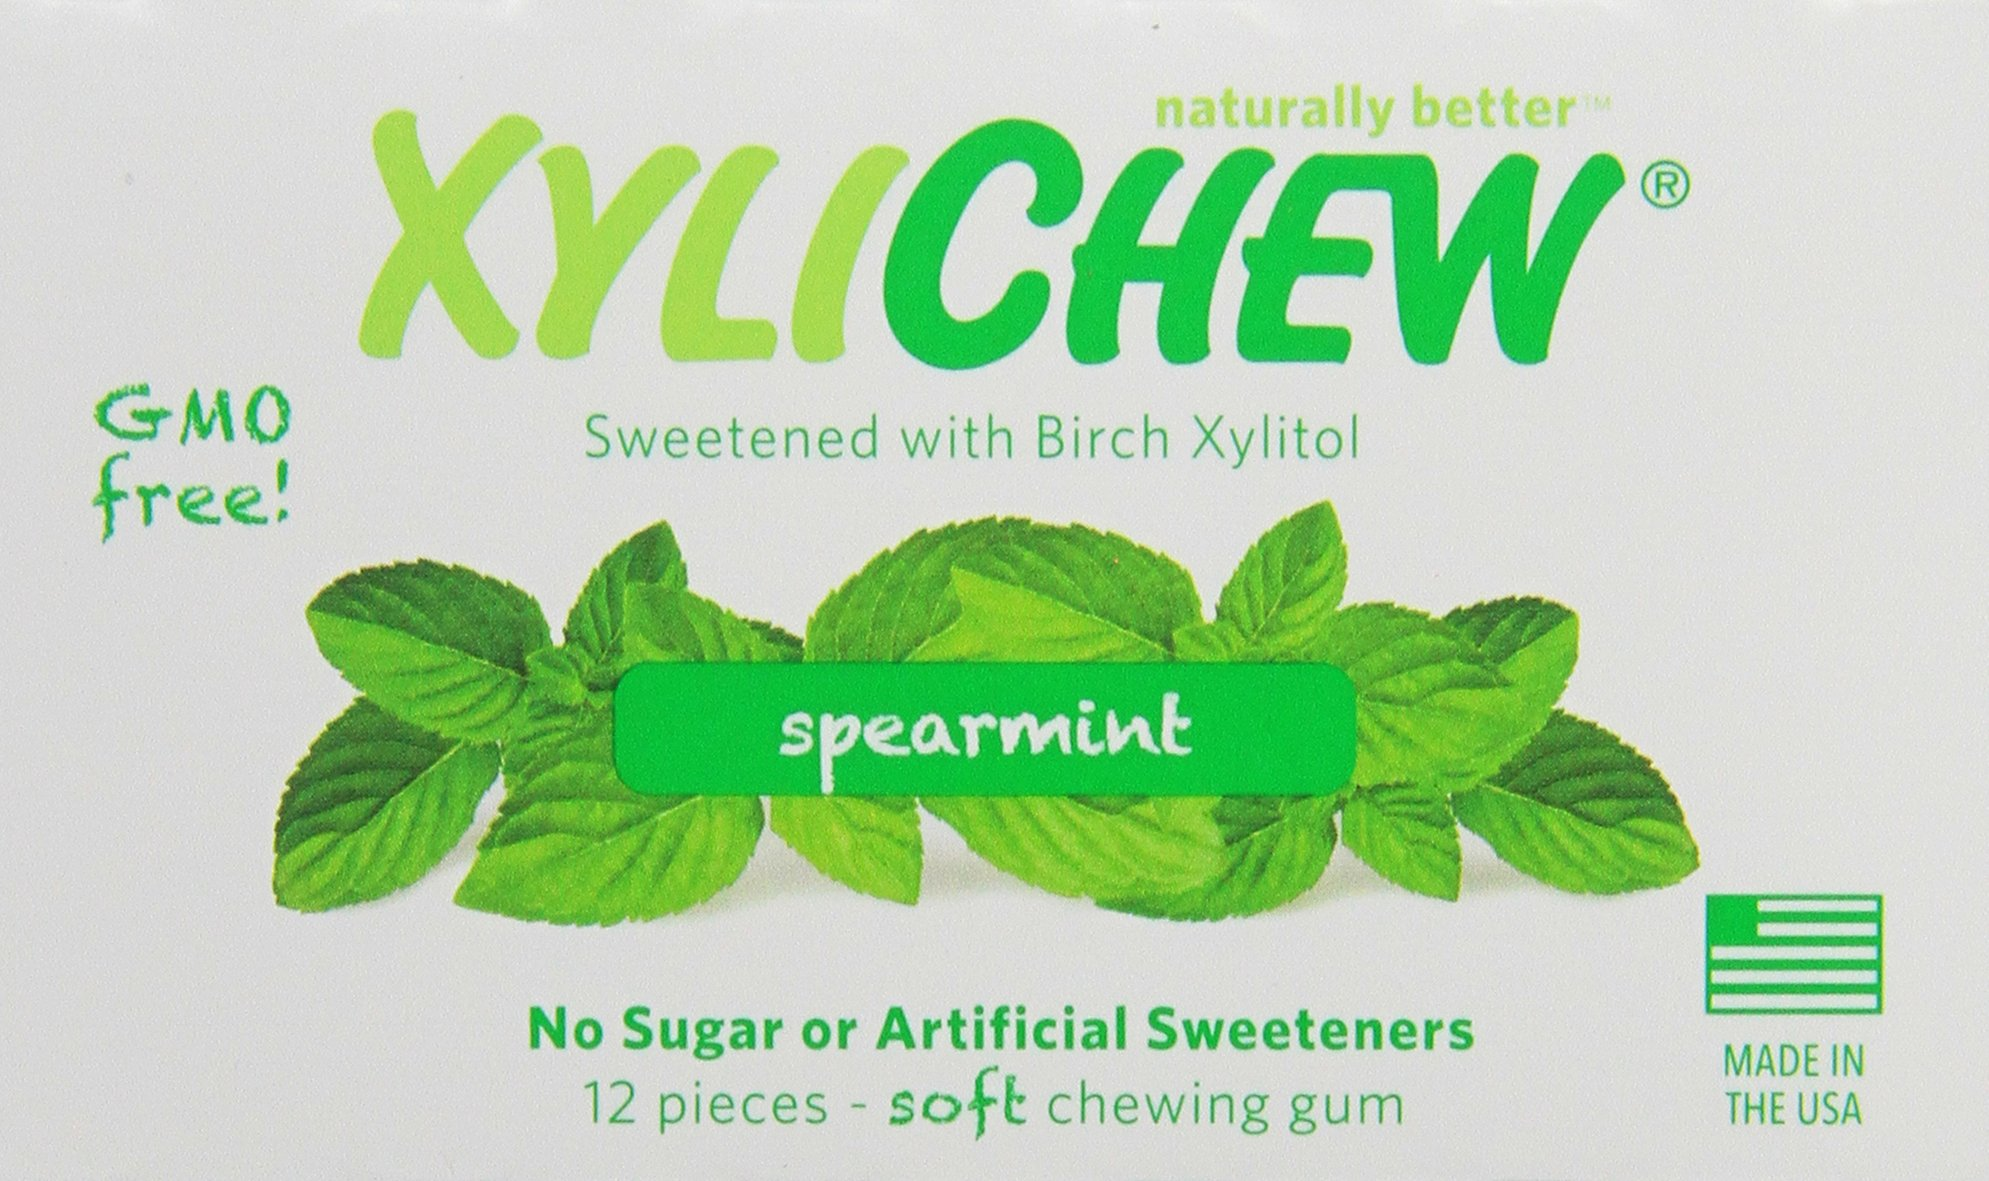 Xylichew Spearmint Counter Display Chewing Gum, 12 Count by Xylichew